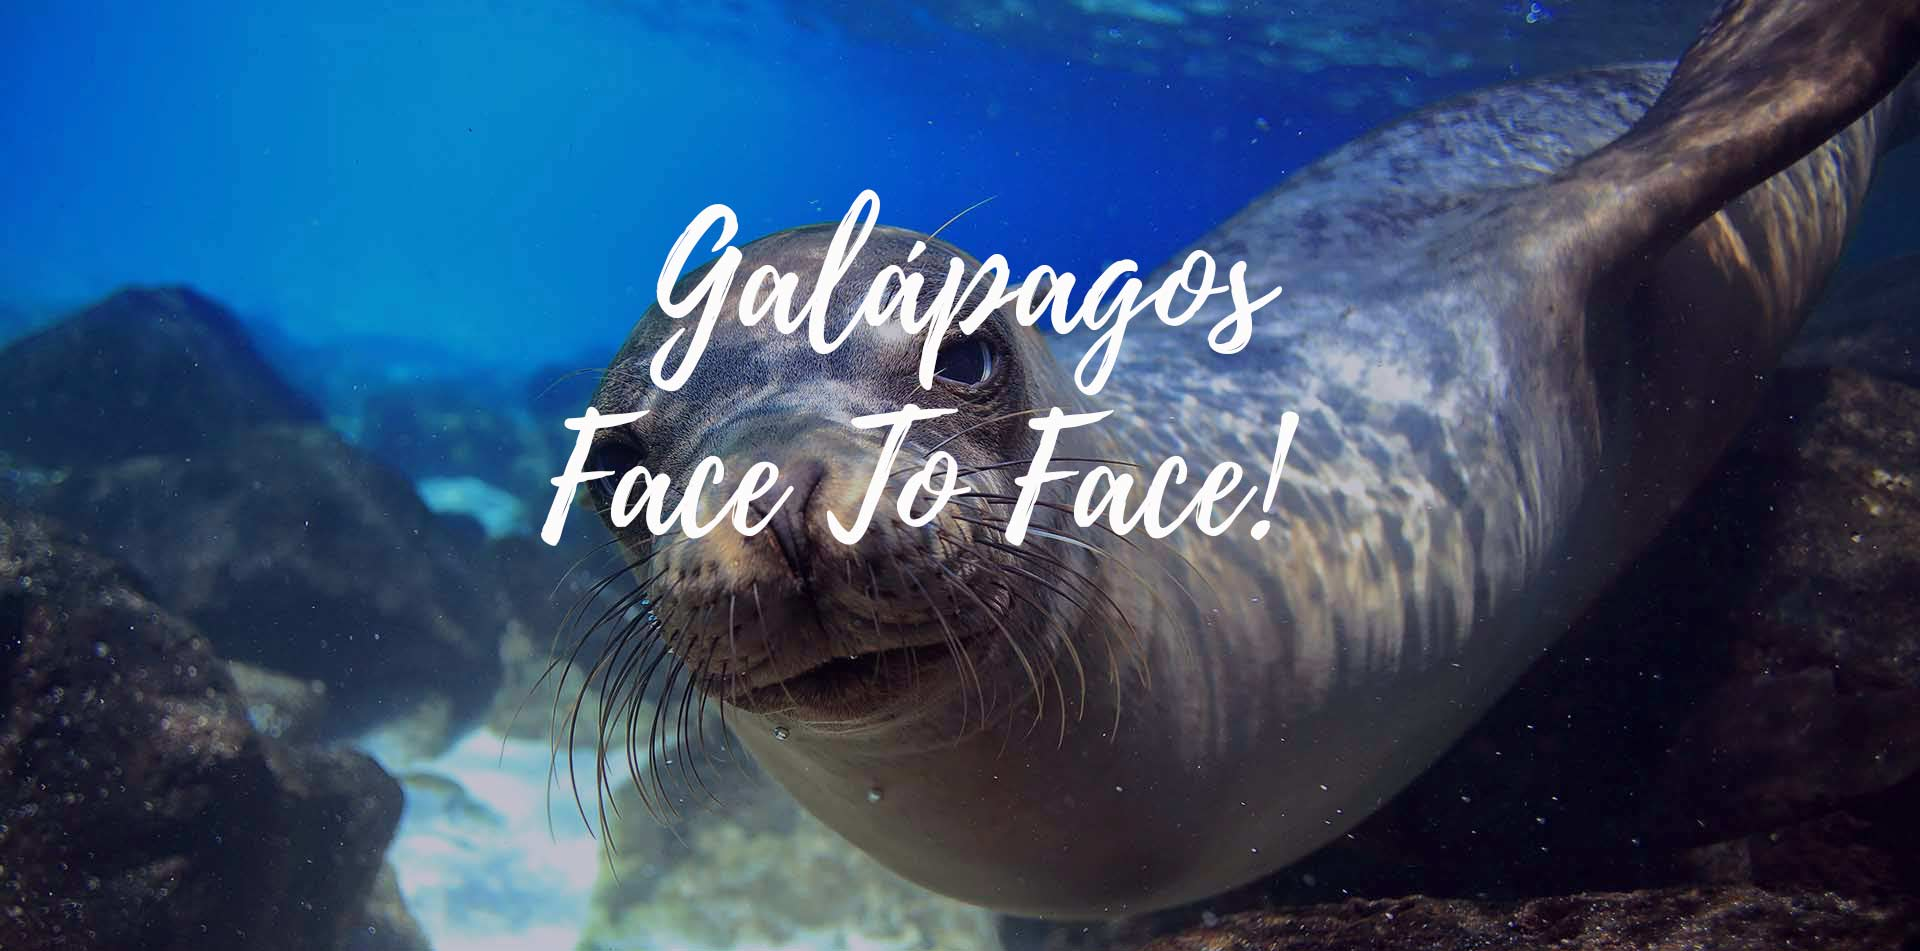 South America Ecuador Galapagos Islands sea lion underwater close up Galapagos Face to Face - luxury vacation destinations